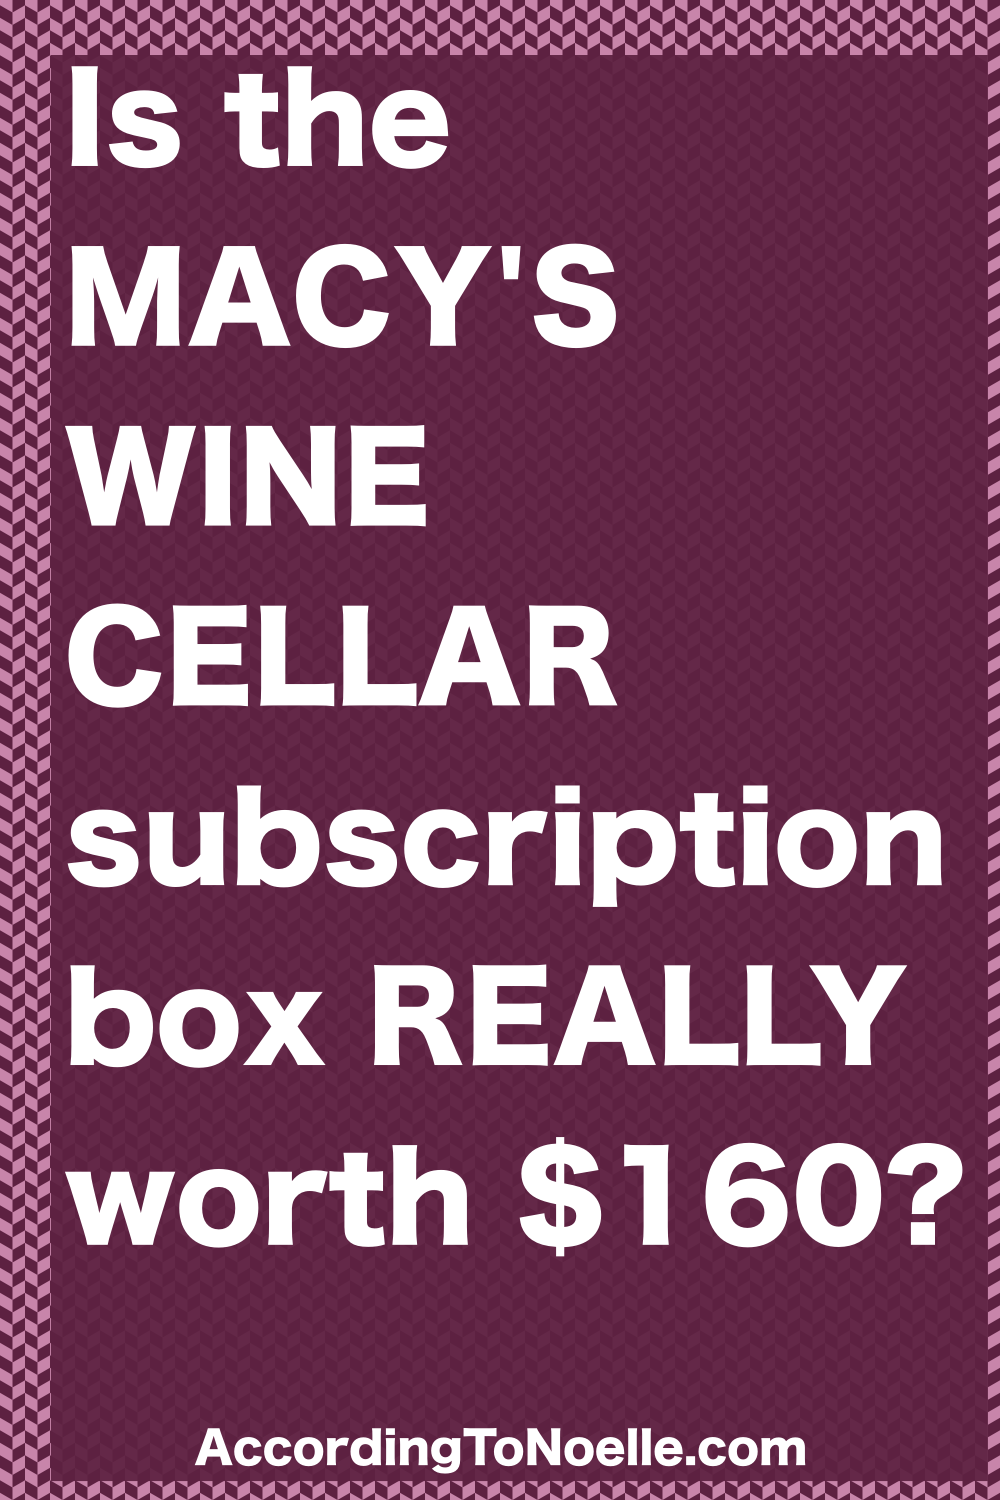 Is the Macy's Wine Cellar subscription box really worth $160?